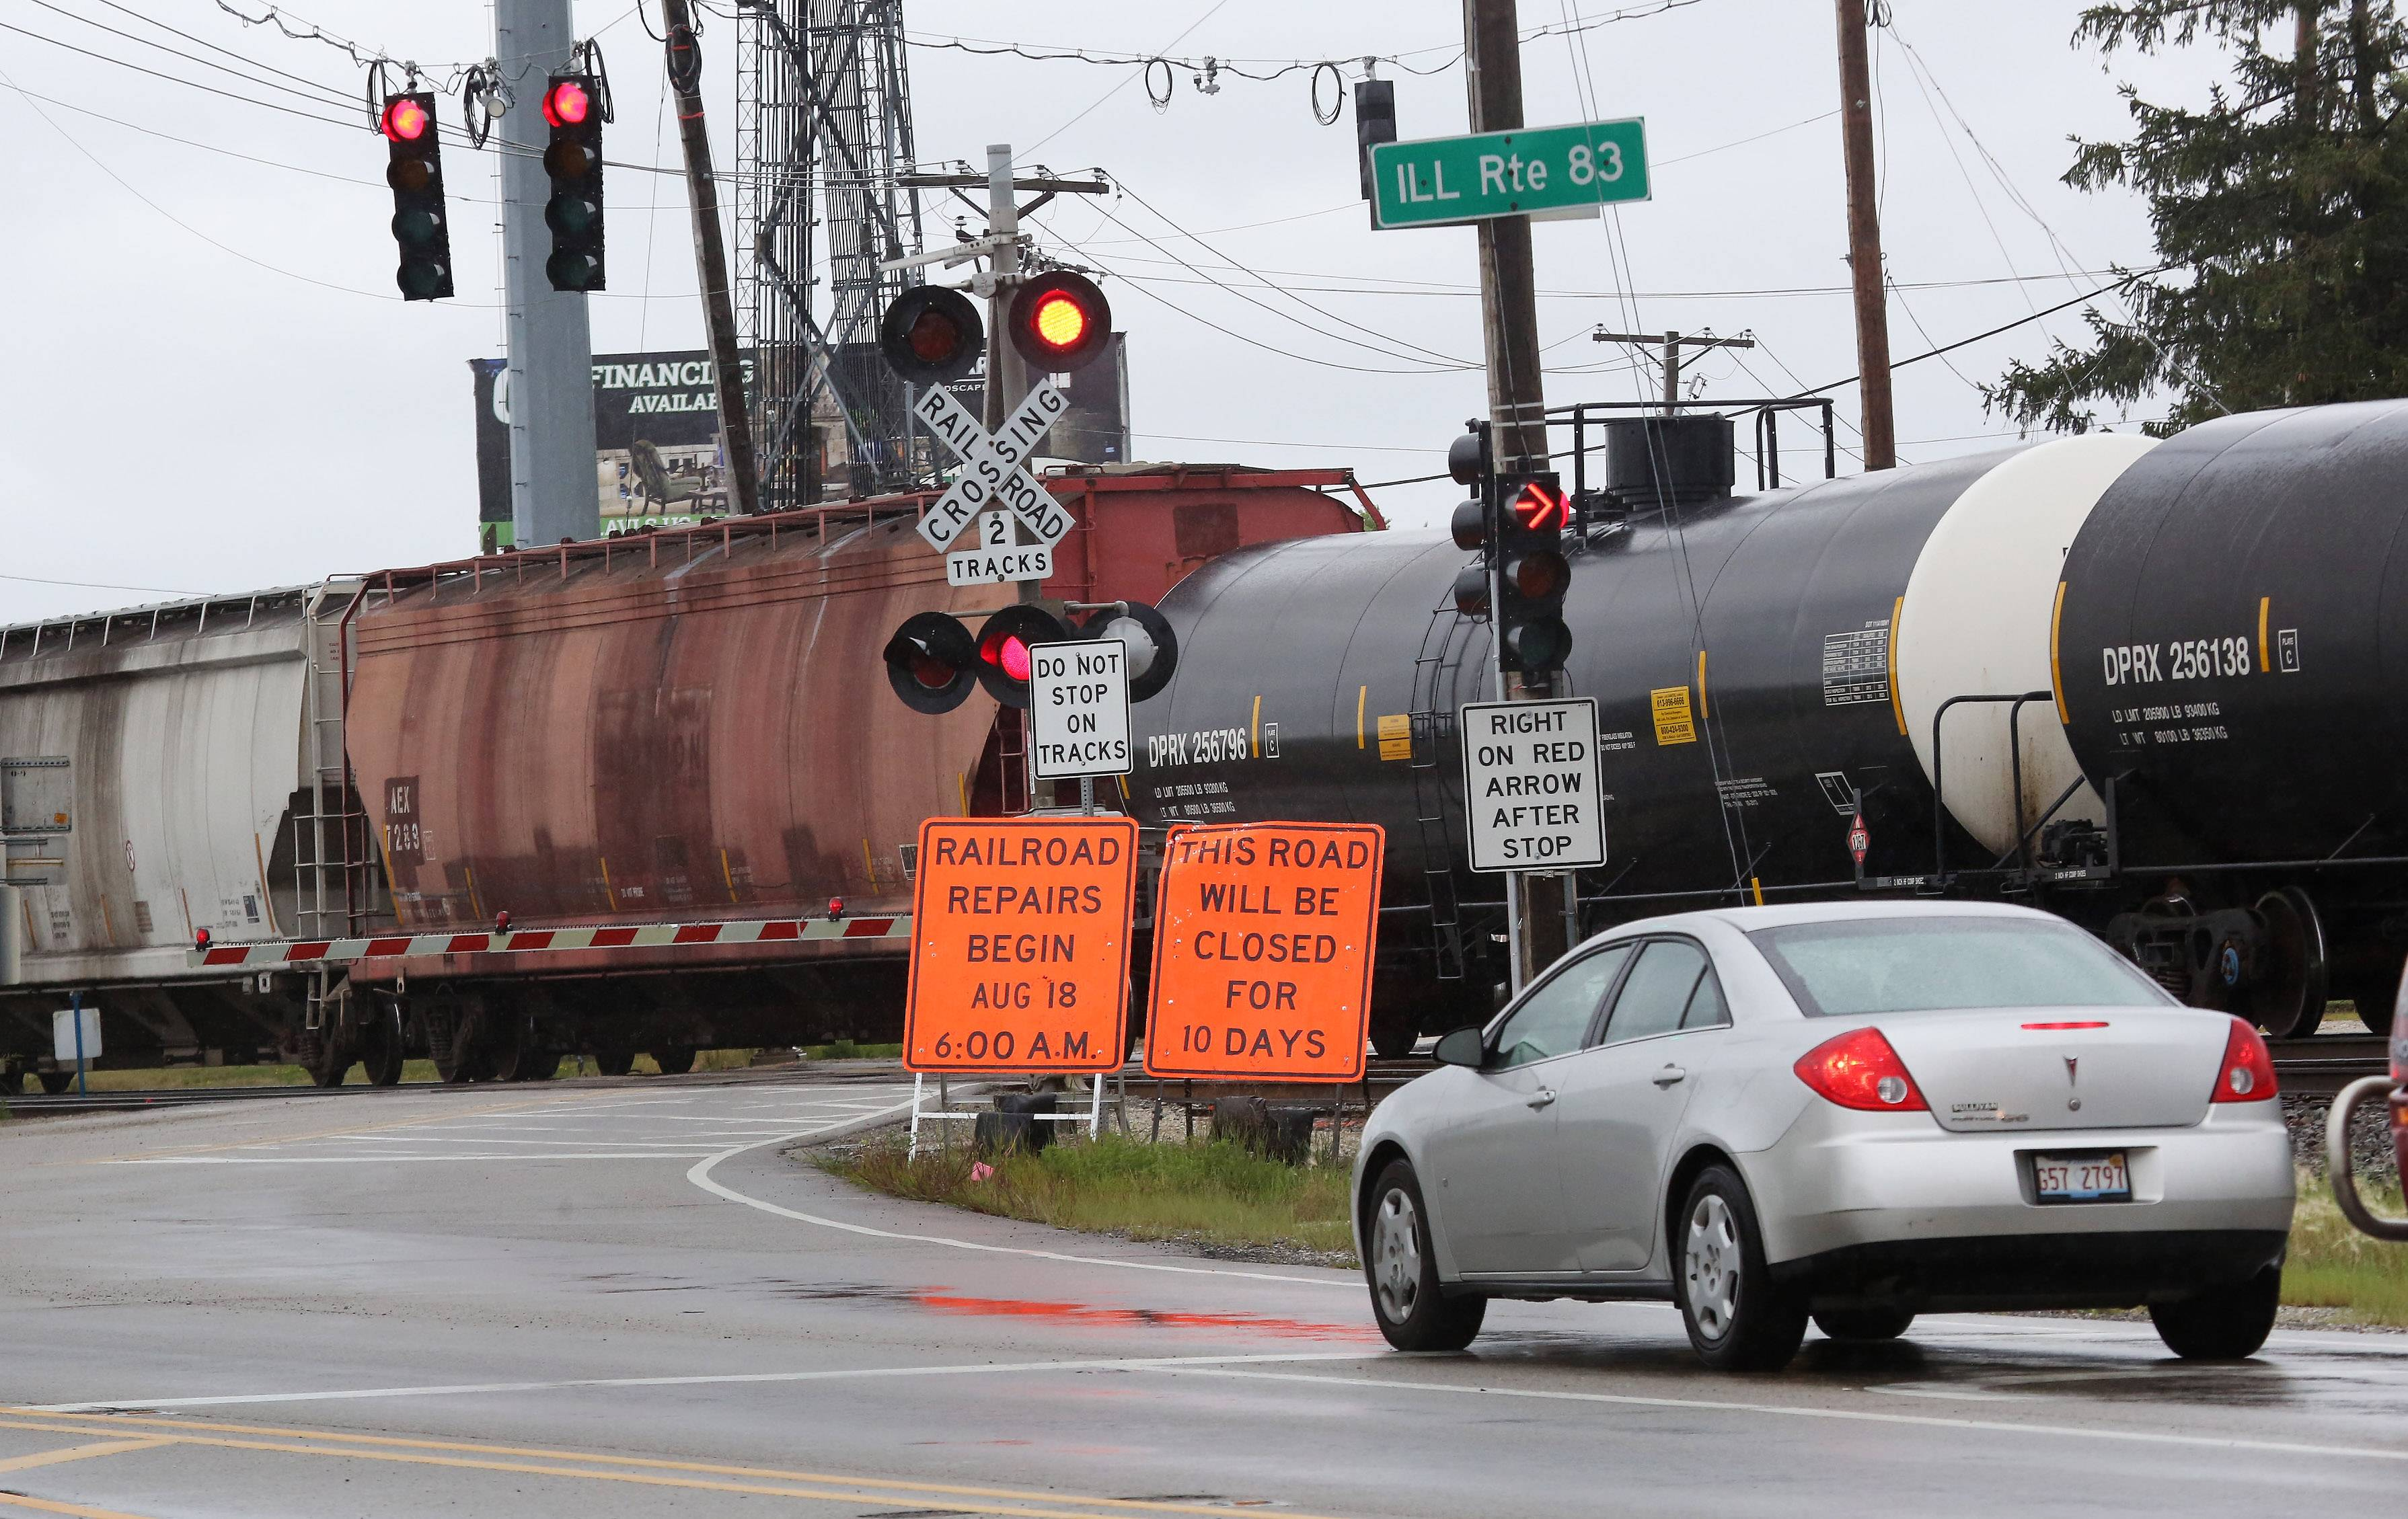 Signs alert drivers the Route 83 railroad crossing in Grayslake will be closed for track repairs starting Monday, Aug. 18. The work is to last 10 days.